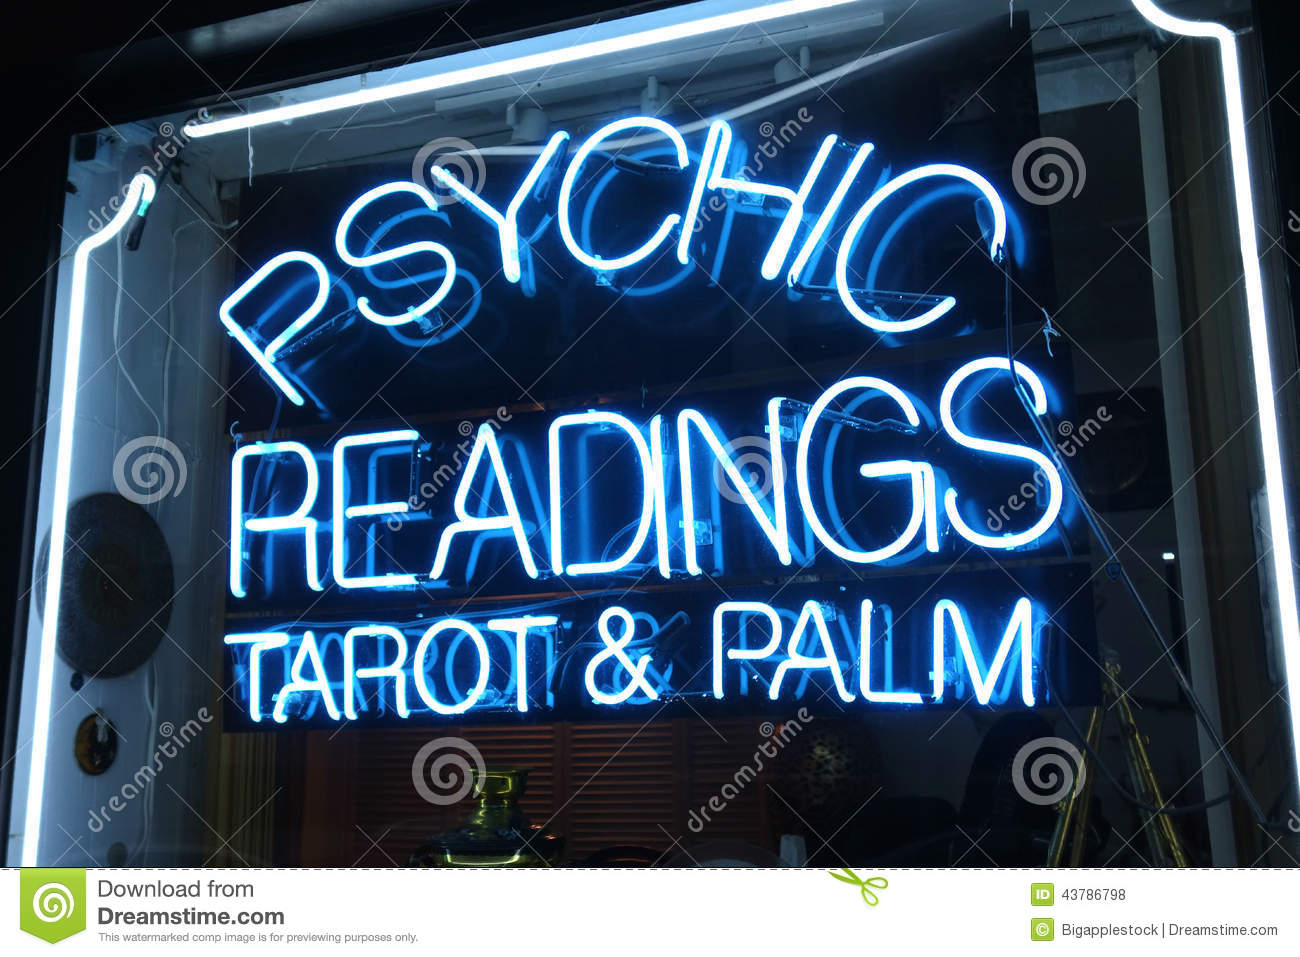 psychic-readings-neon-sign-says-tarot-pa